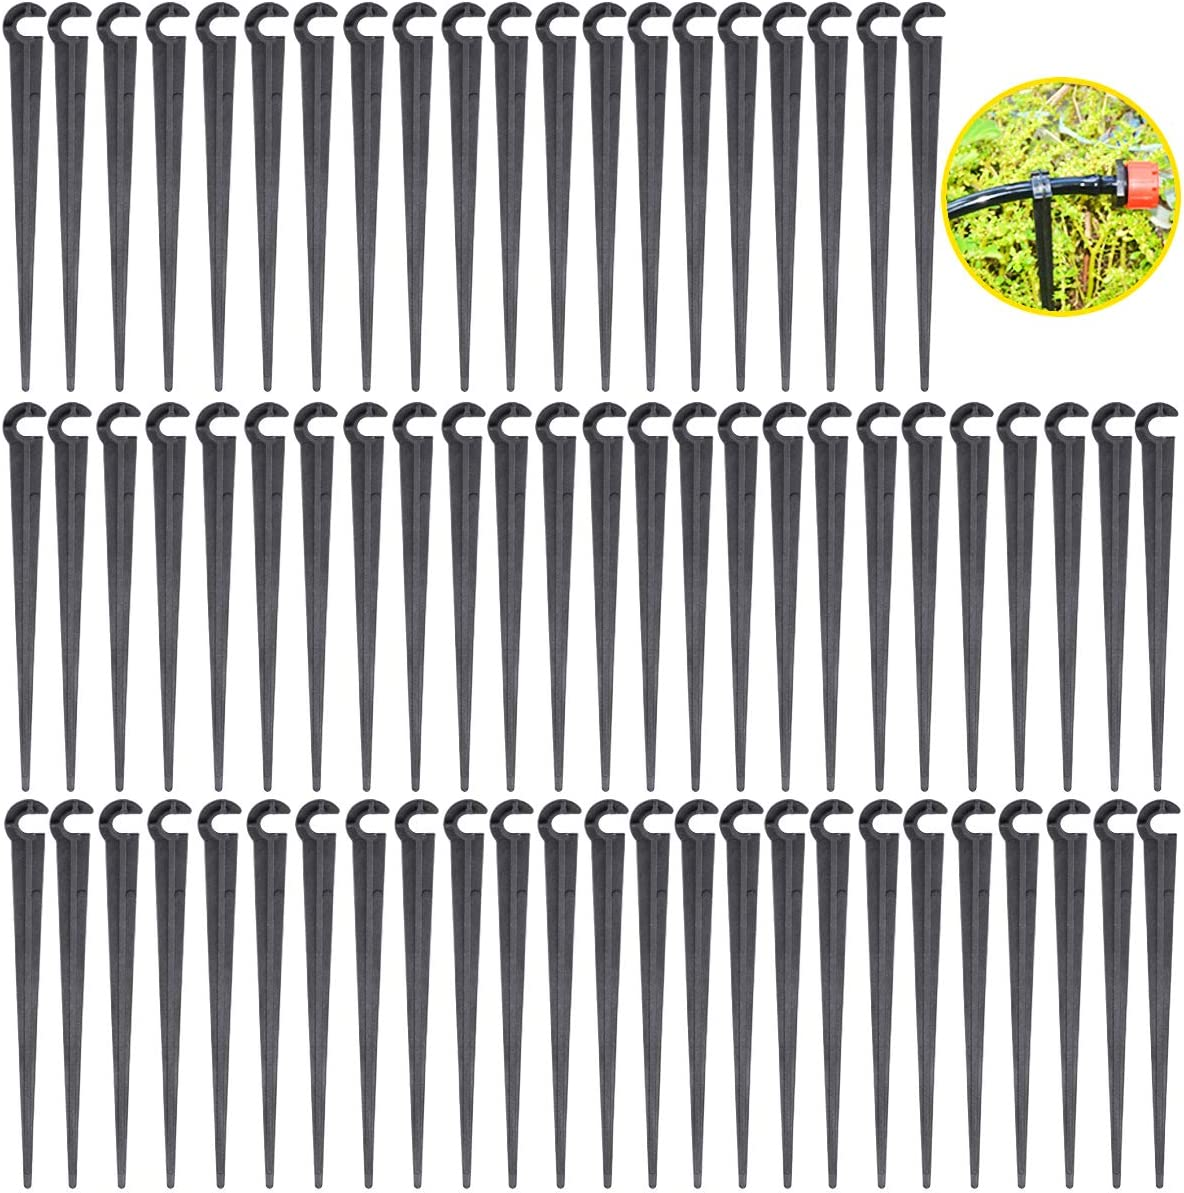 Heatoe 200 Pcs Irrigation Drip Support Stakes Tubing Support Holder Hose Support Holder for Flower beds, Gardens.